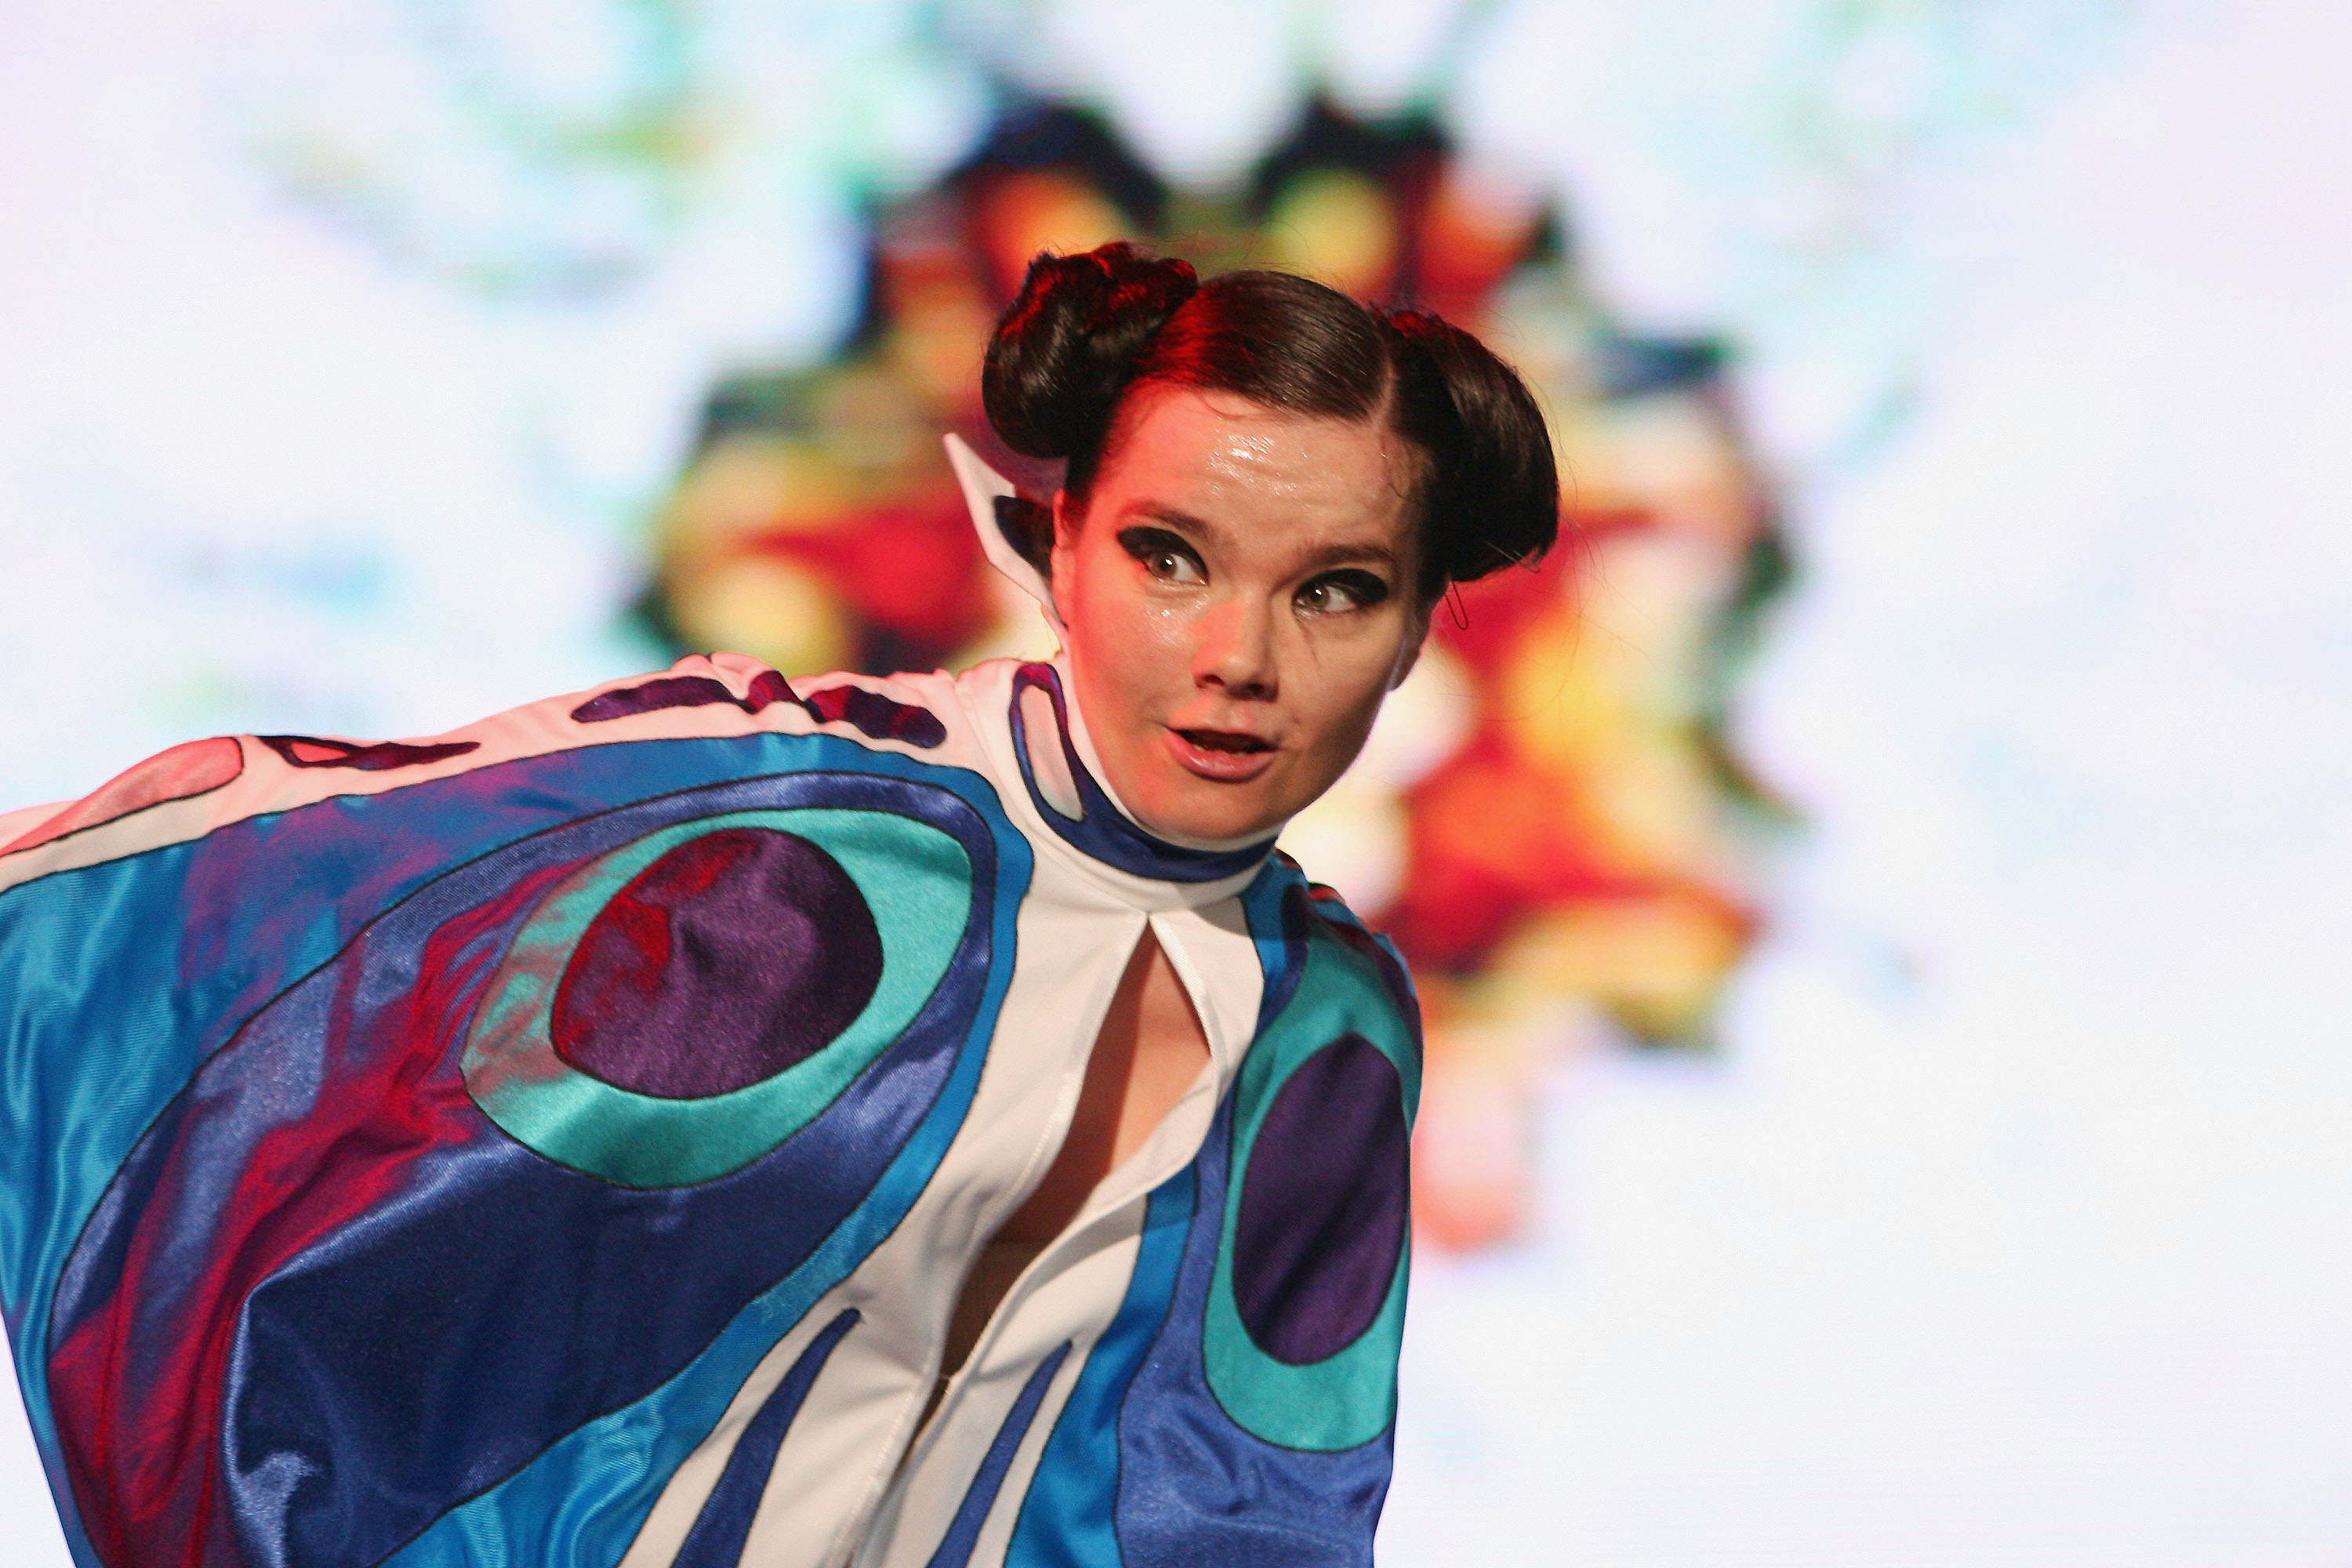 CHIBA, JAPAN - JULY 2:  Iceland's rock singer Bjork  performs on stage at 'Live 8 Japan' at Makuhari Messe on July 2, 2005 in